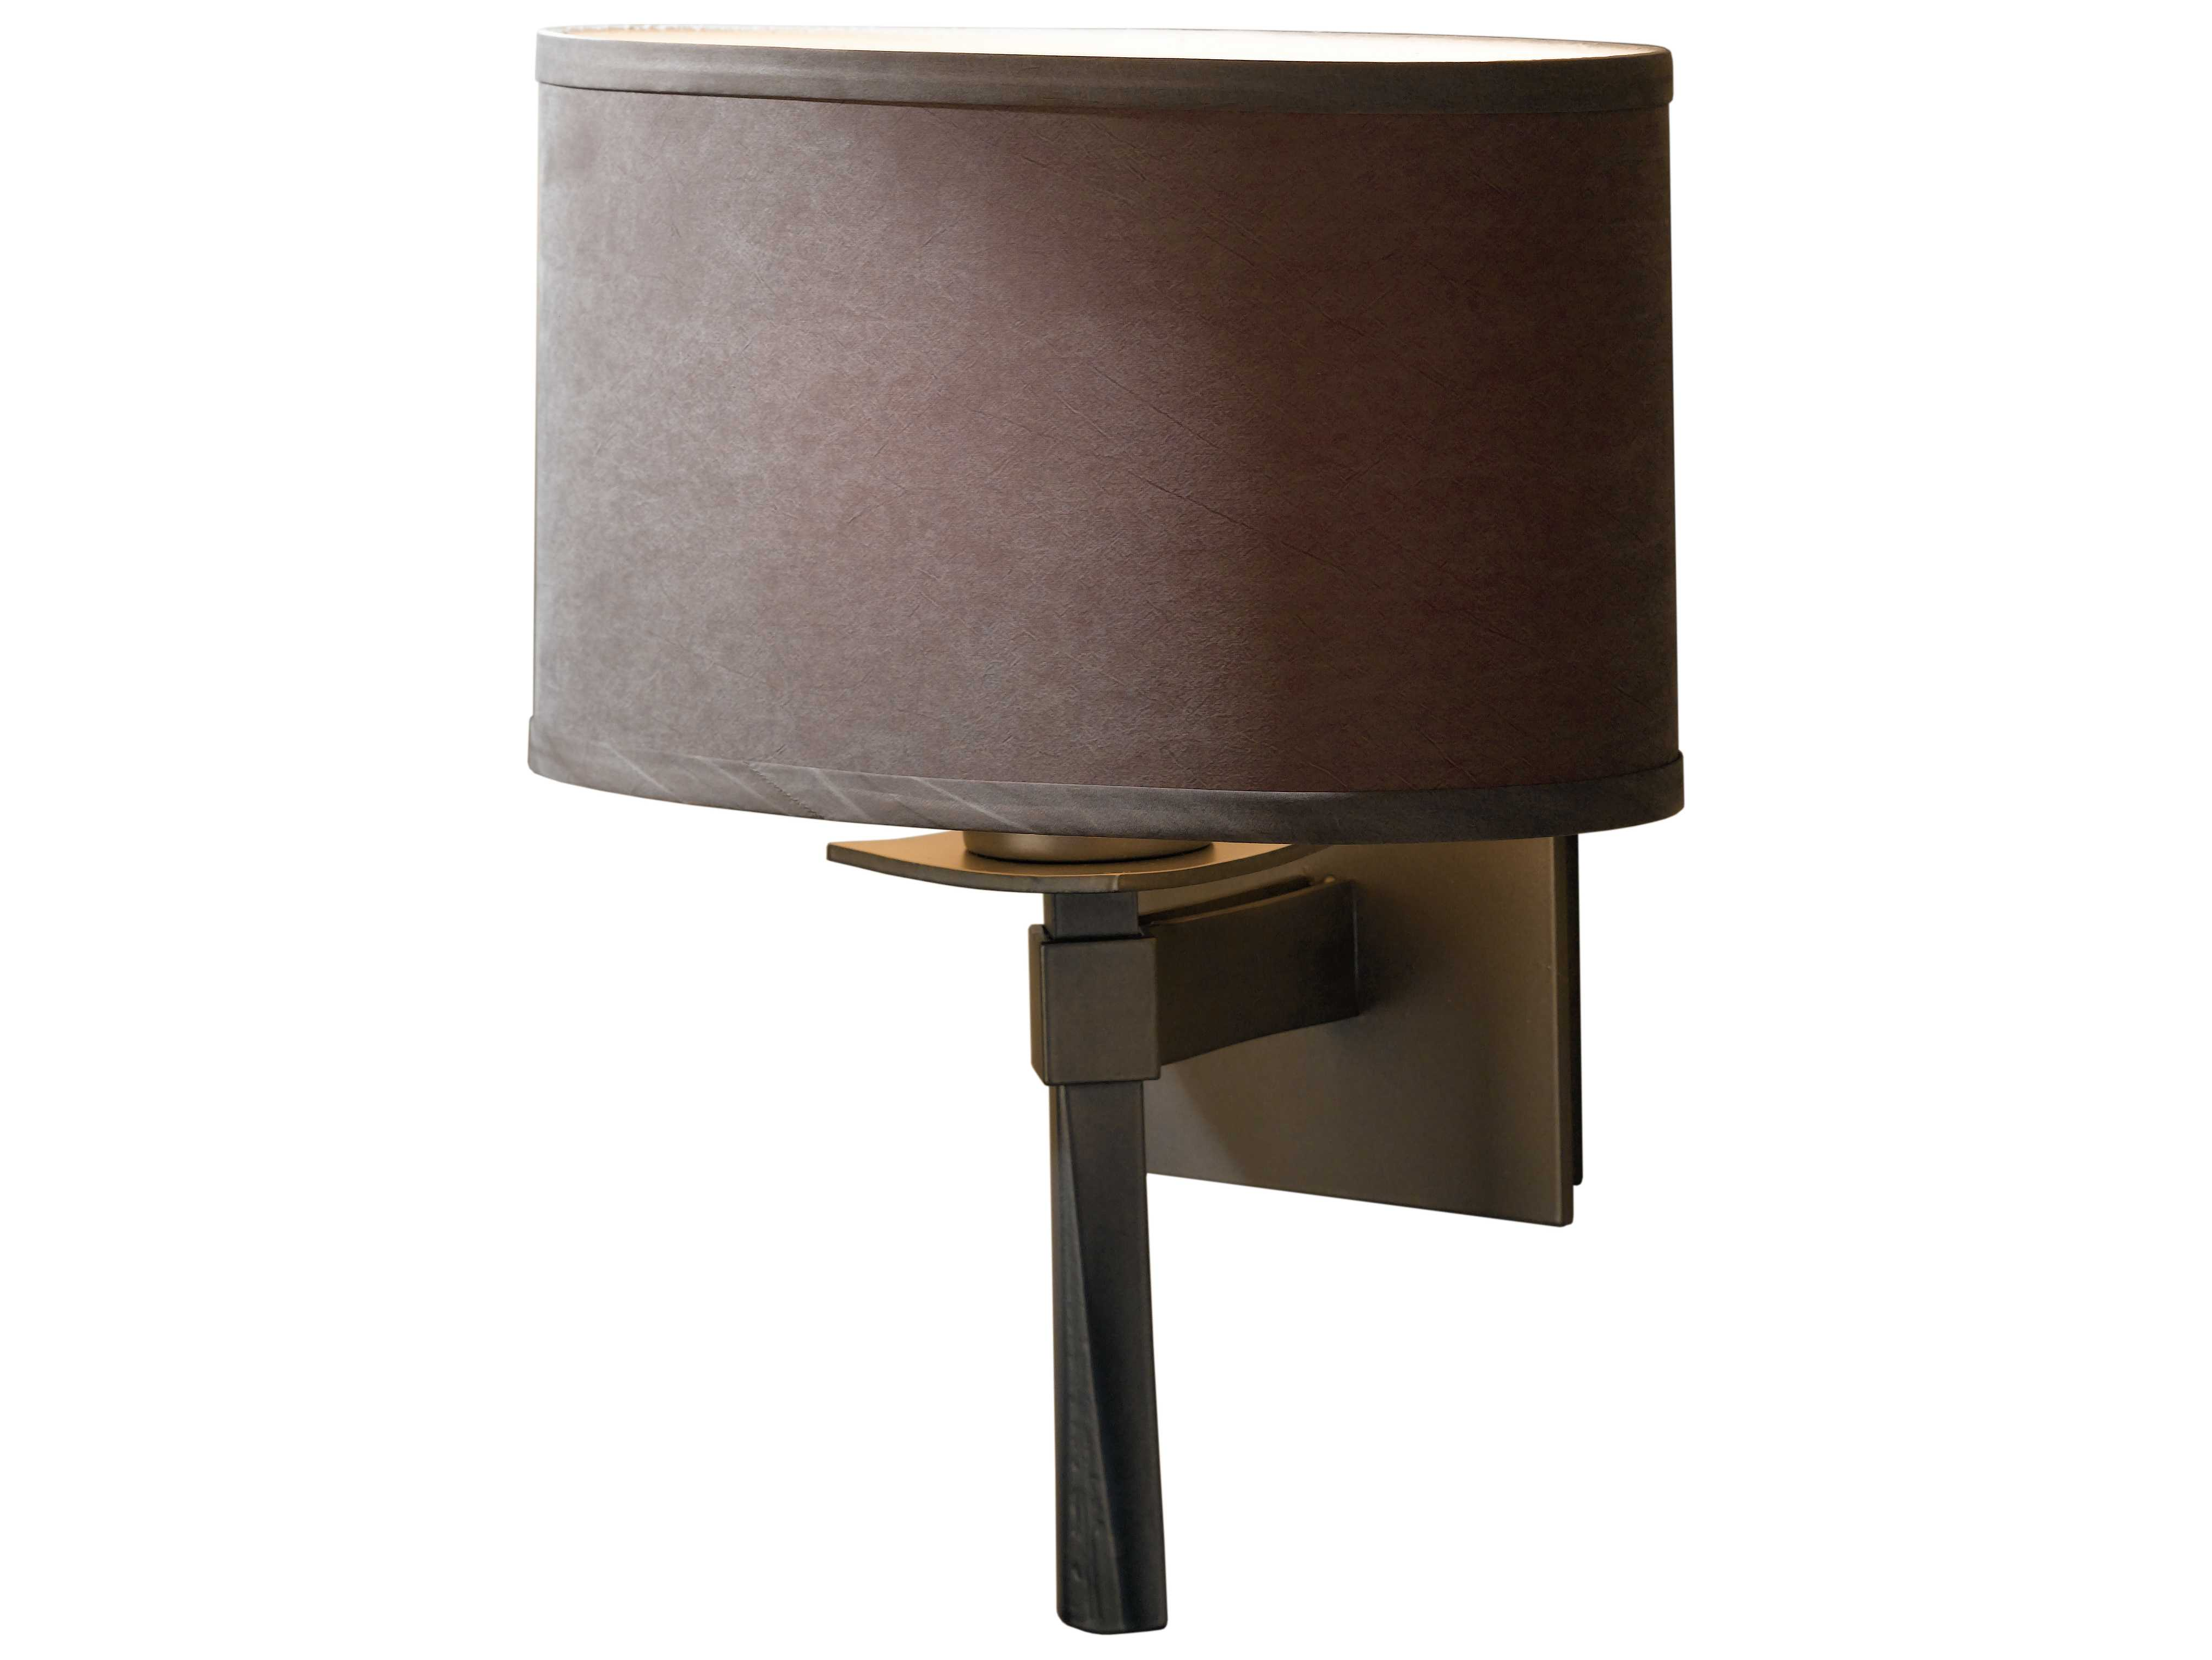 Hubbardton Forge Beacon Incandescent Wall Sconce HBF204810